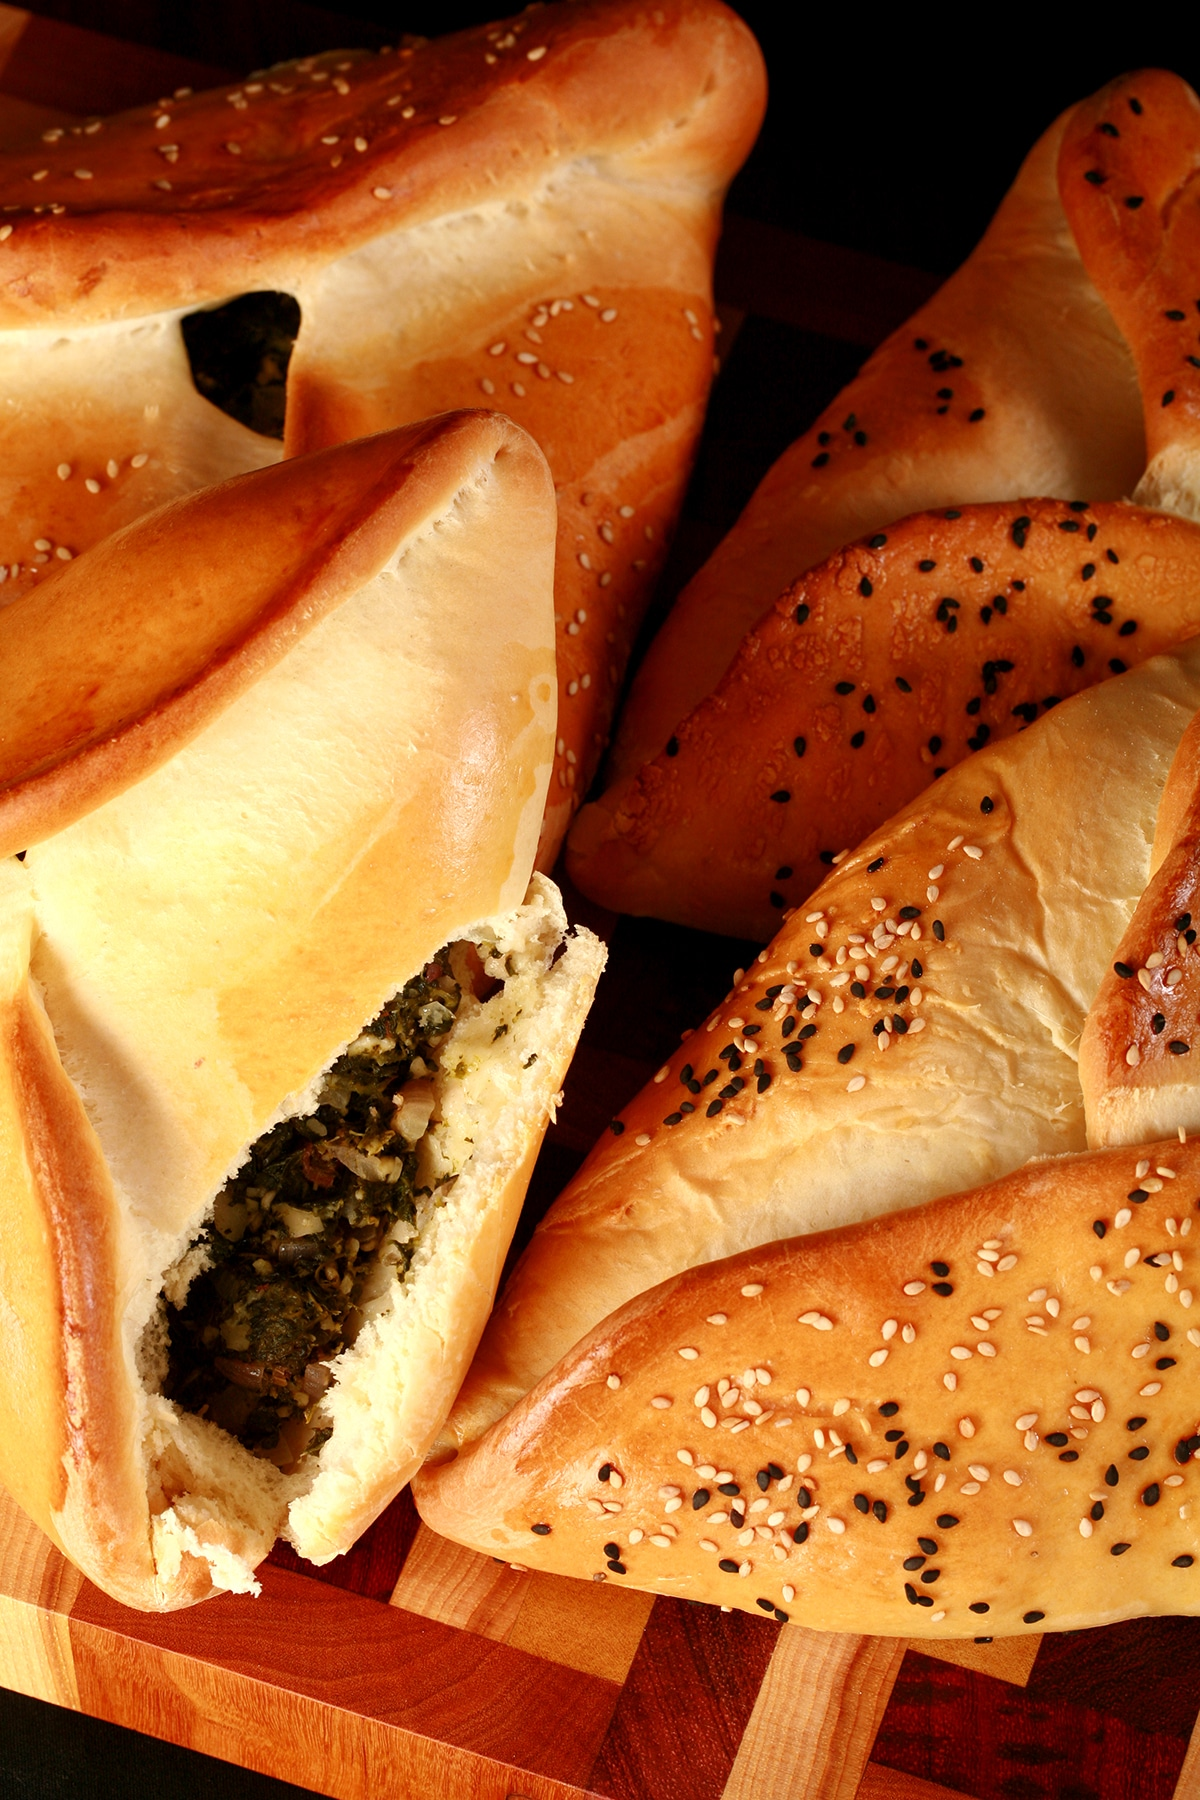 Close up view of 4 bread based spinach hand pies, covered with sesame seeds. One is opened, revealing the spinach and feta filling.